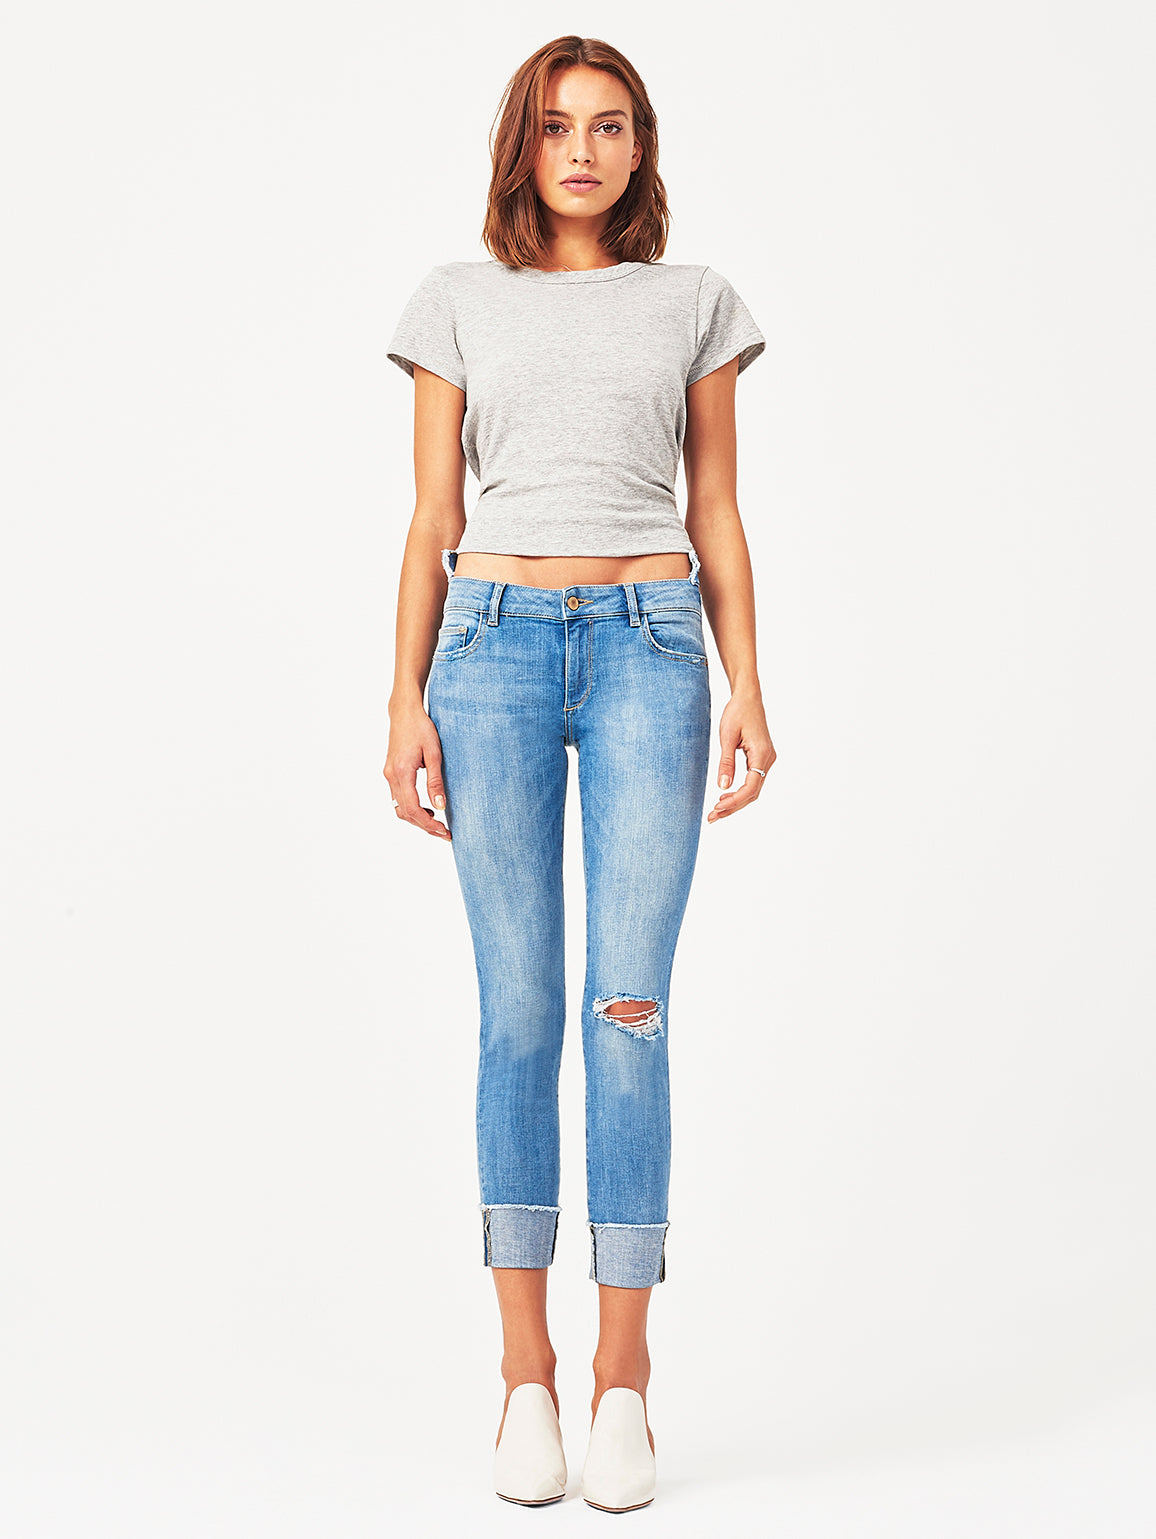 Farrow Ankle High Rise Skinny | Amarillo DL 1961 Denim